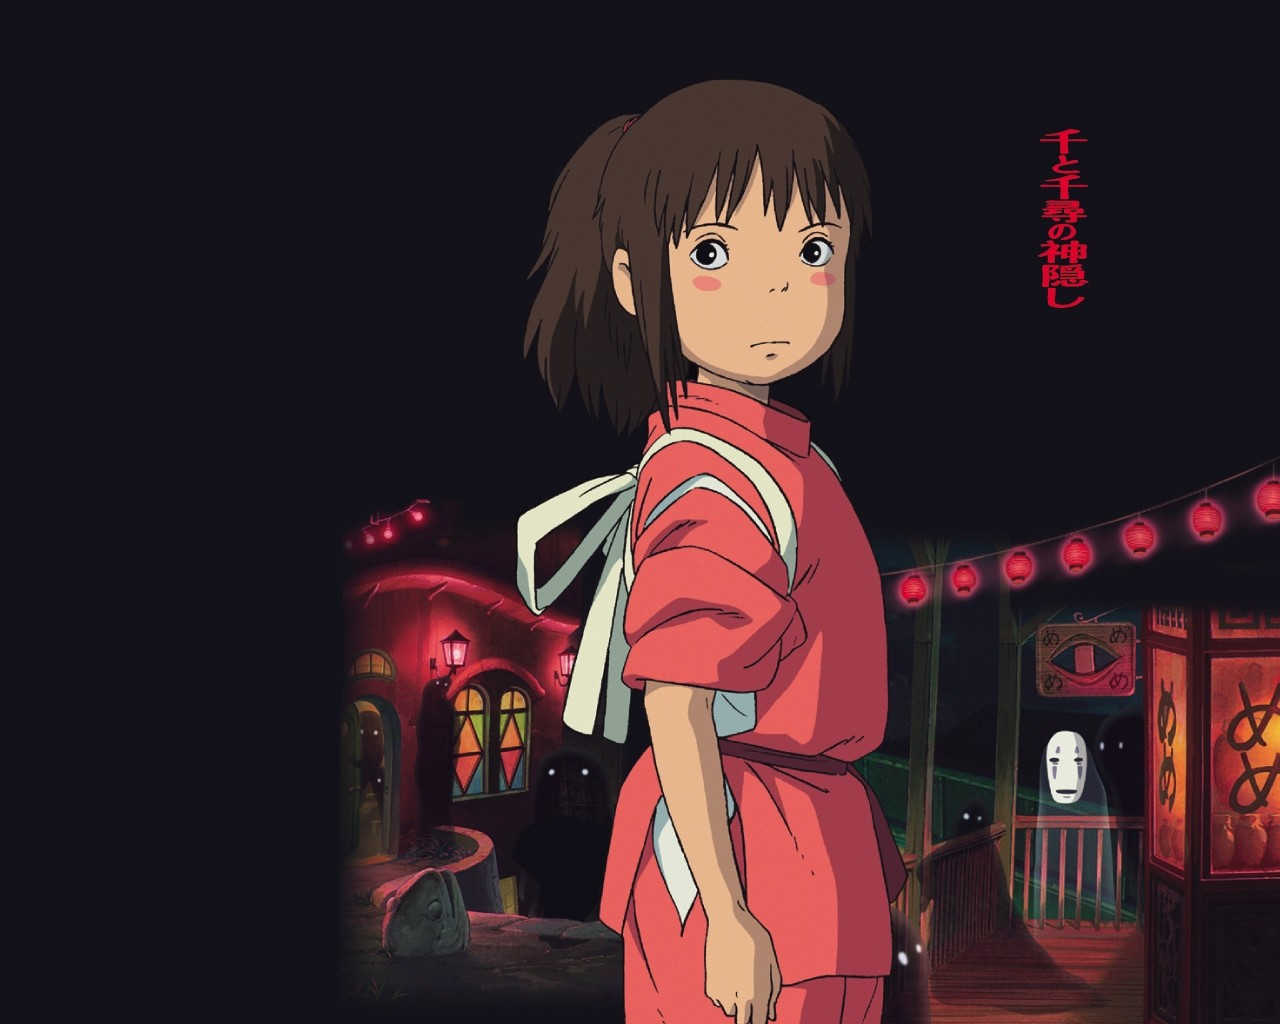 spirited away review essay Spirited away (2001) on imdb: plot summary, synopsis, and more.